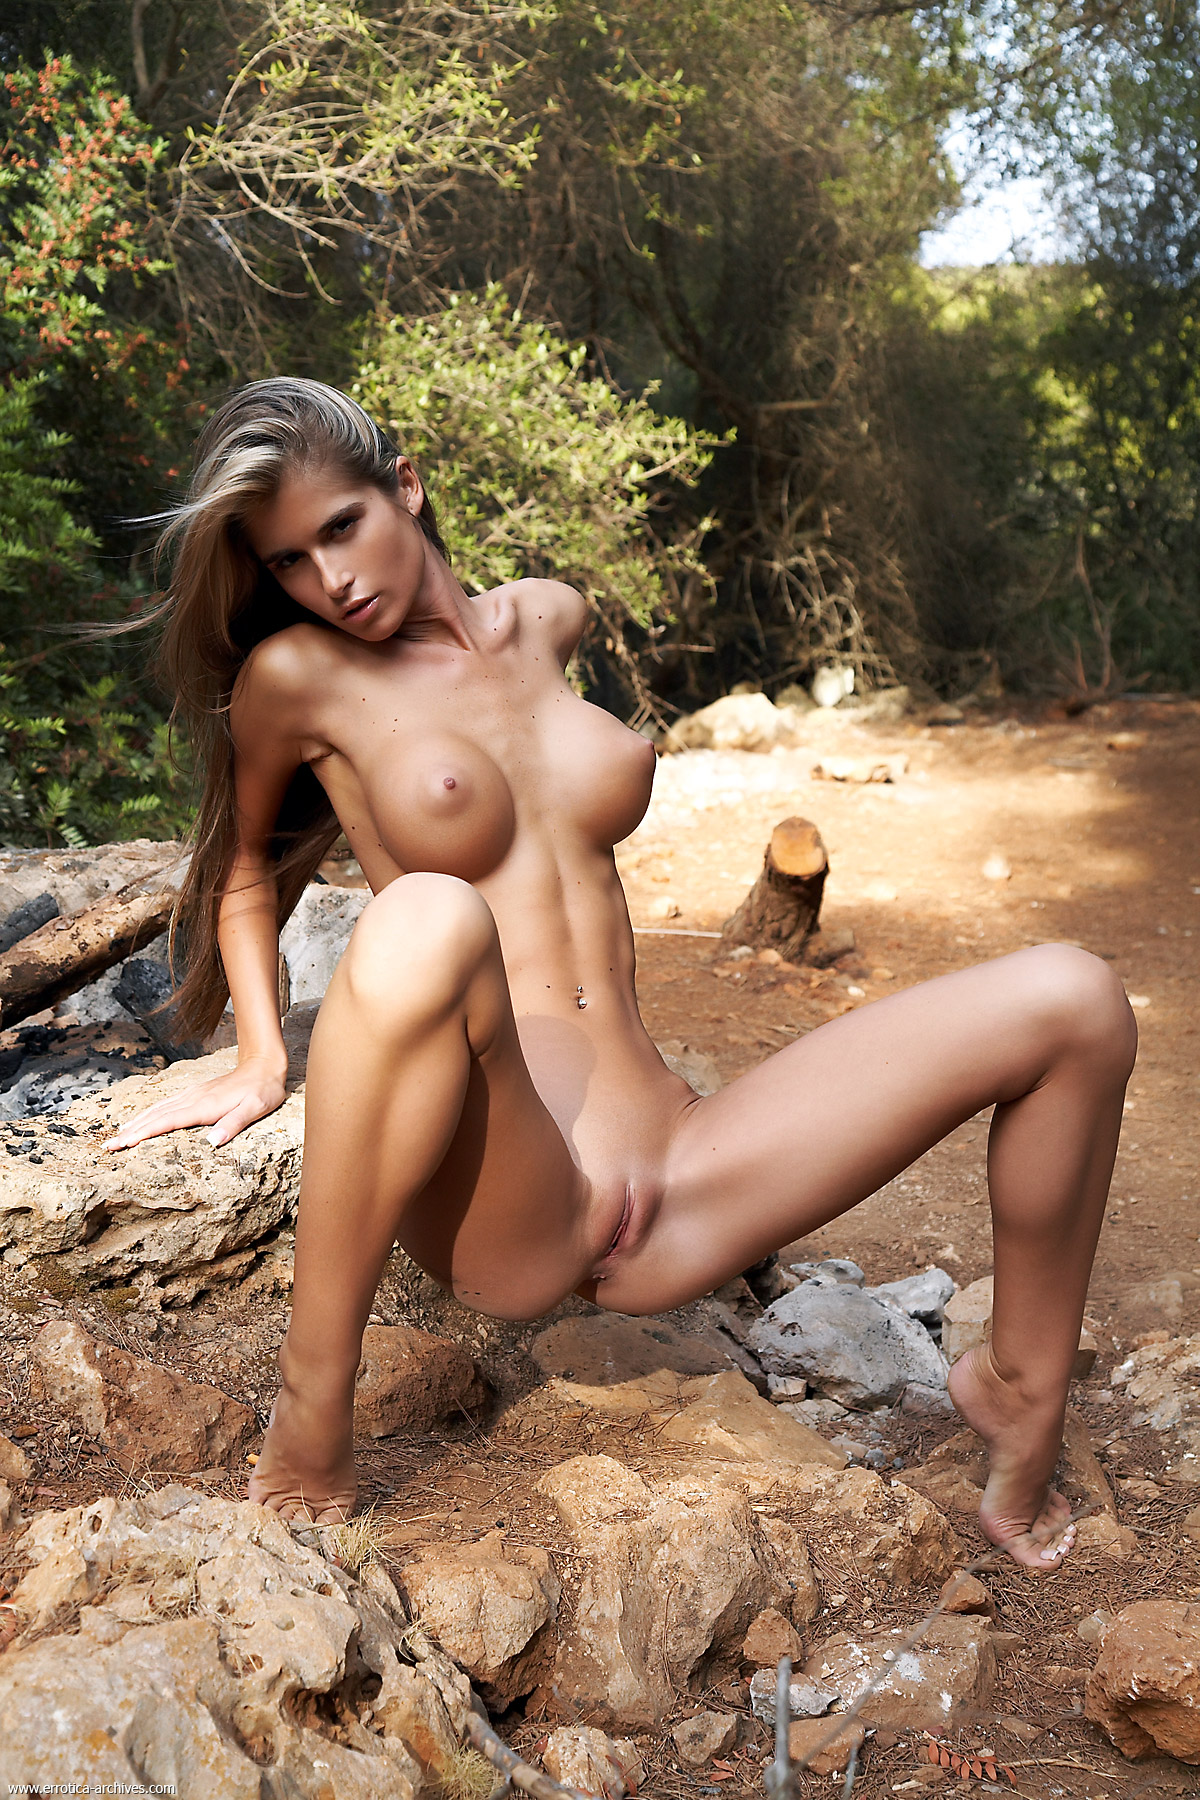 Nude girls in amazon forest pictures pornos photos